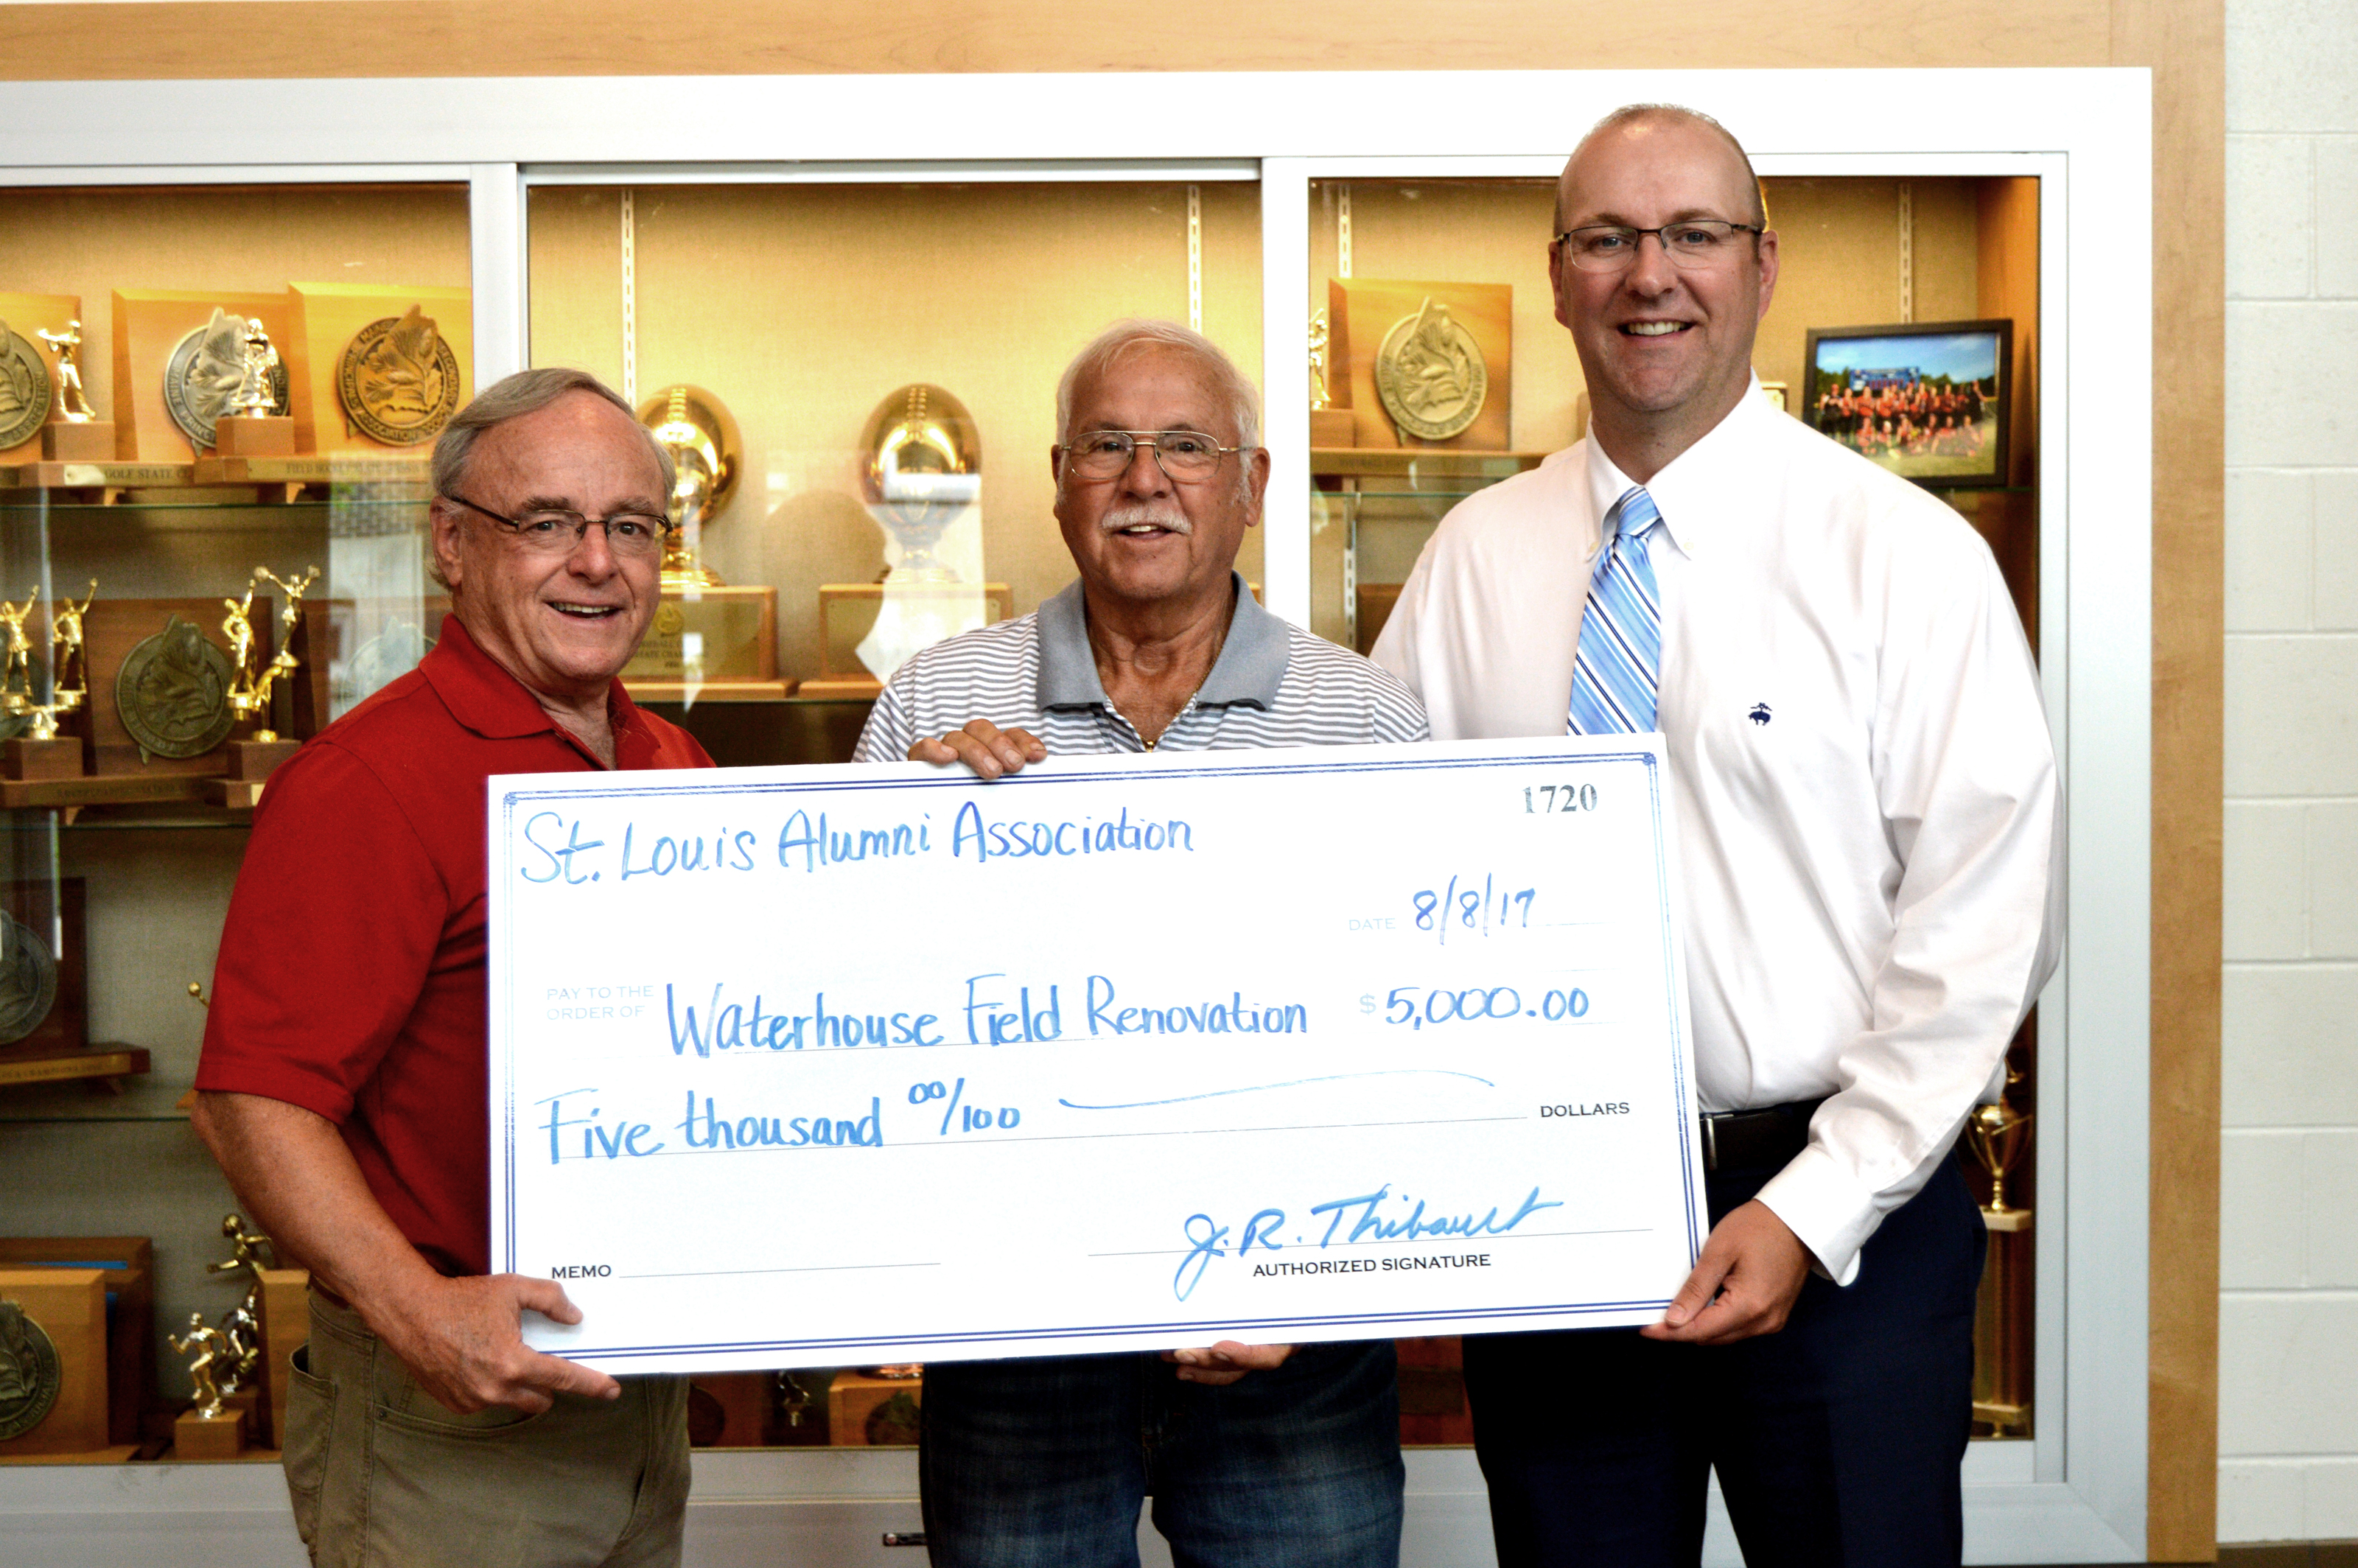 The St. Louis Alumni Association present a $5,000 check to the Biddeford School Department to support the Waterhouse Field renovations. From left are St. Louis Alumni Board of Director members John Thibault and Richard 'Dick' Dion and Biddeford Schools Superintendent Jeremy Ray. SUBMITTED PHOTO